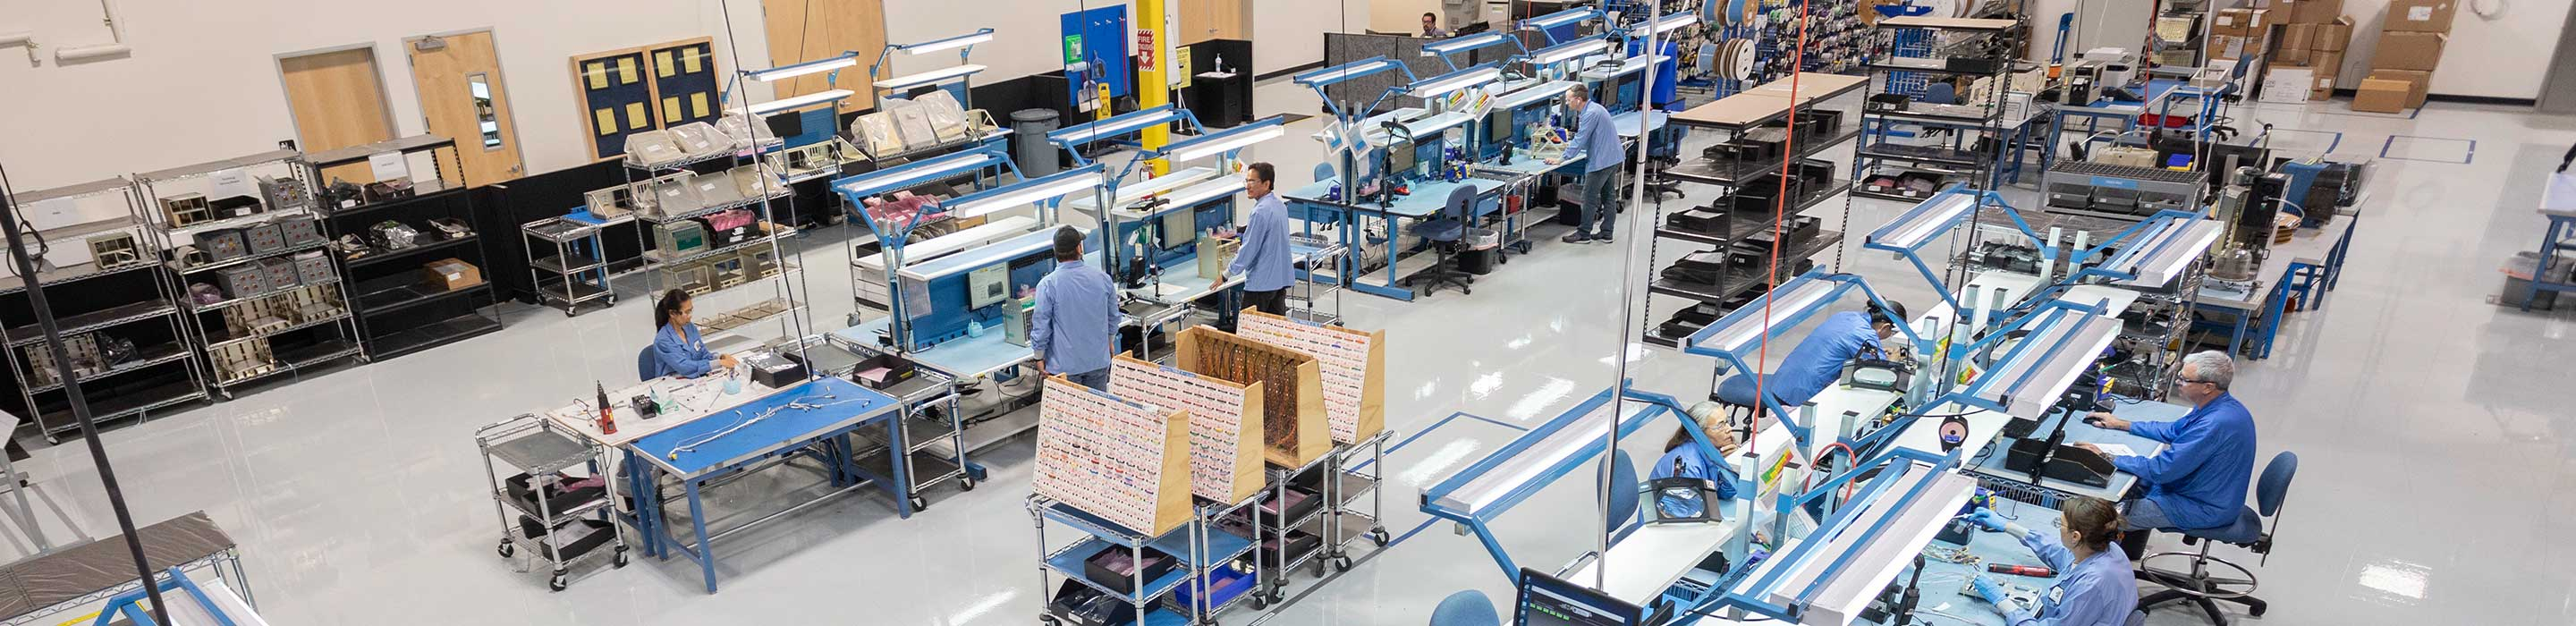 Overhead view of factory floor with people working at desks